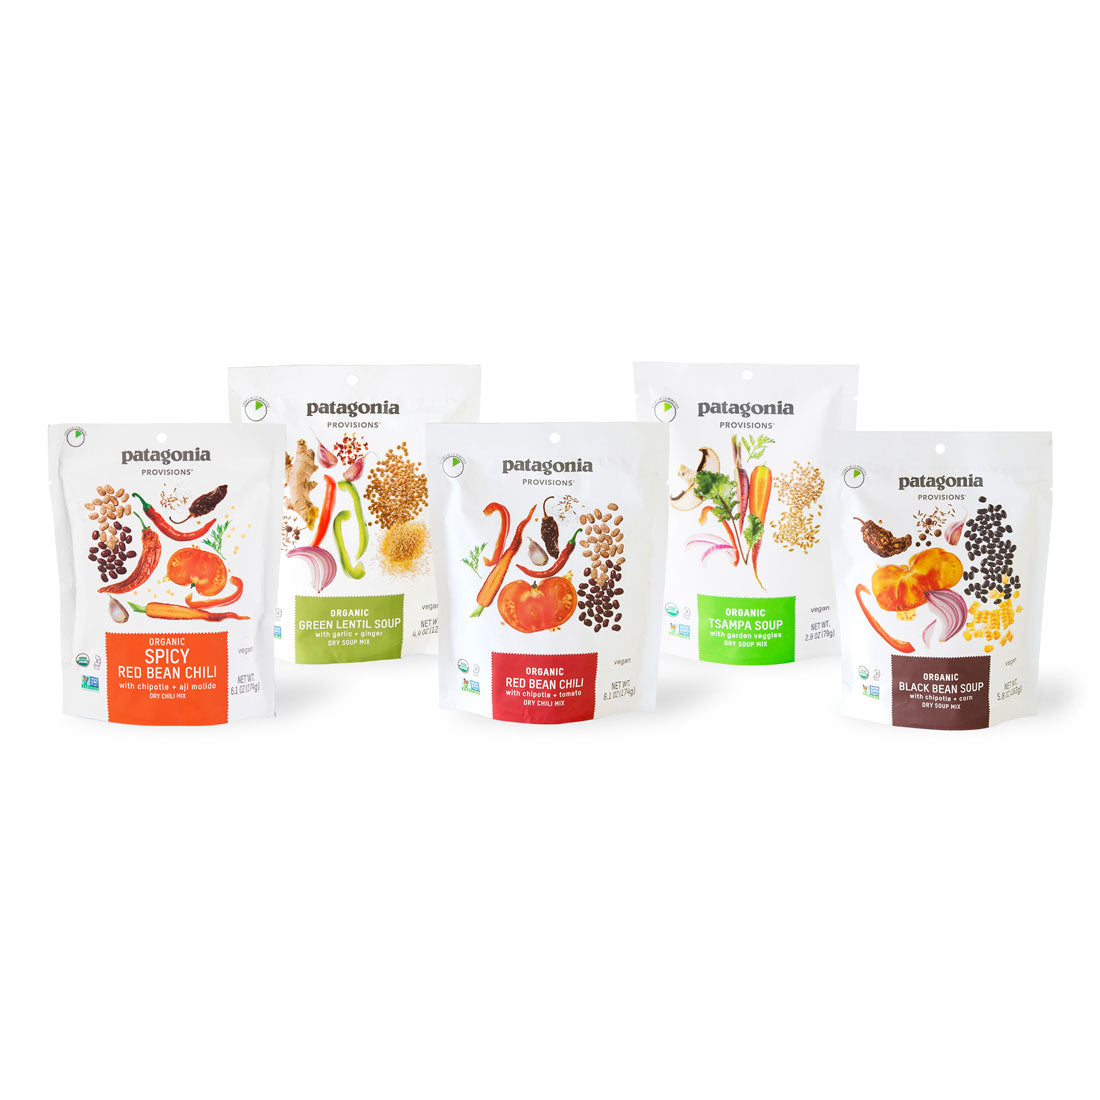 Patagonia Provisions 100% certified organic soup sampler